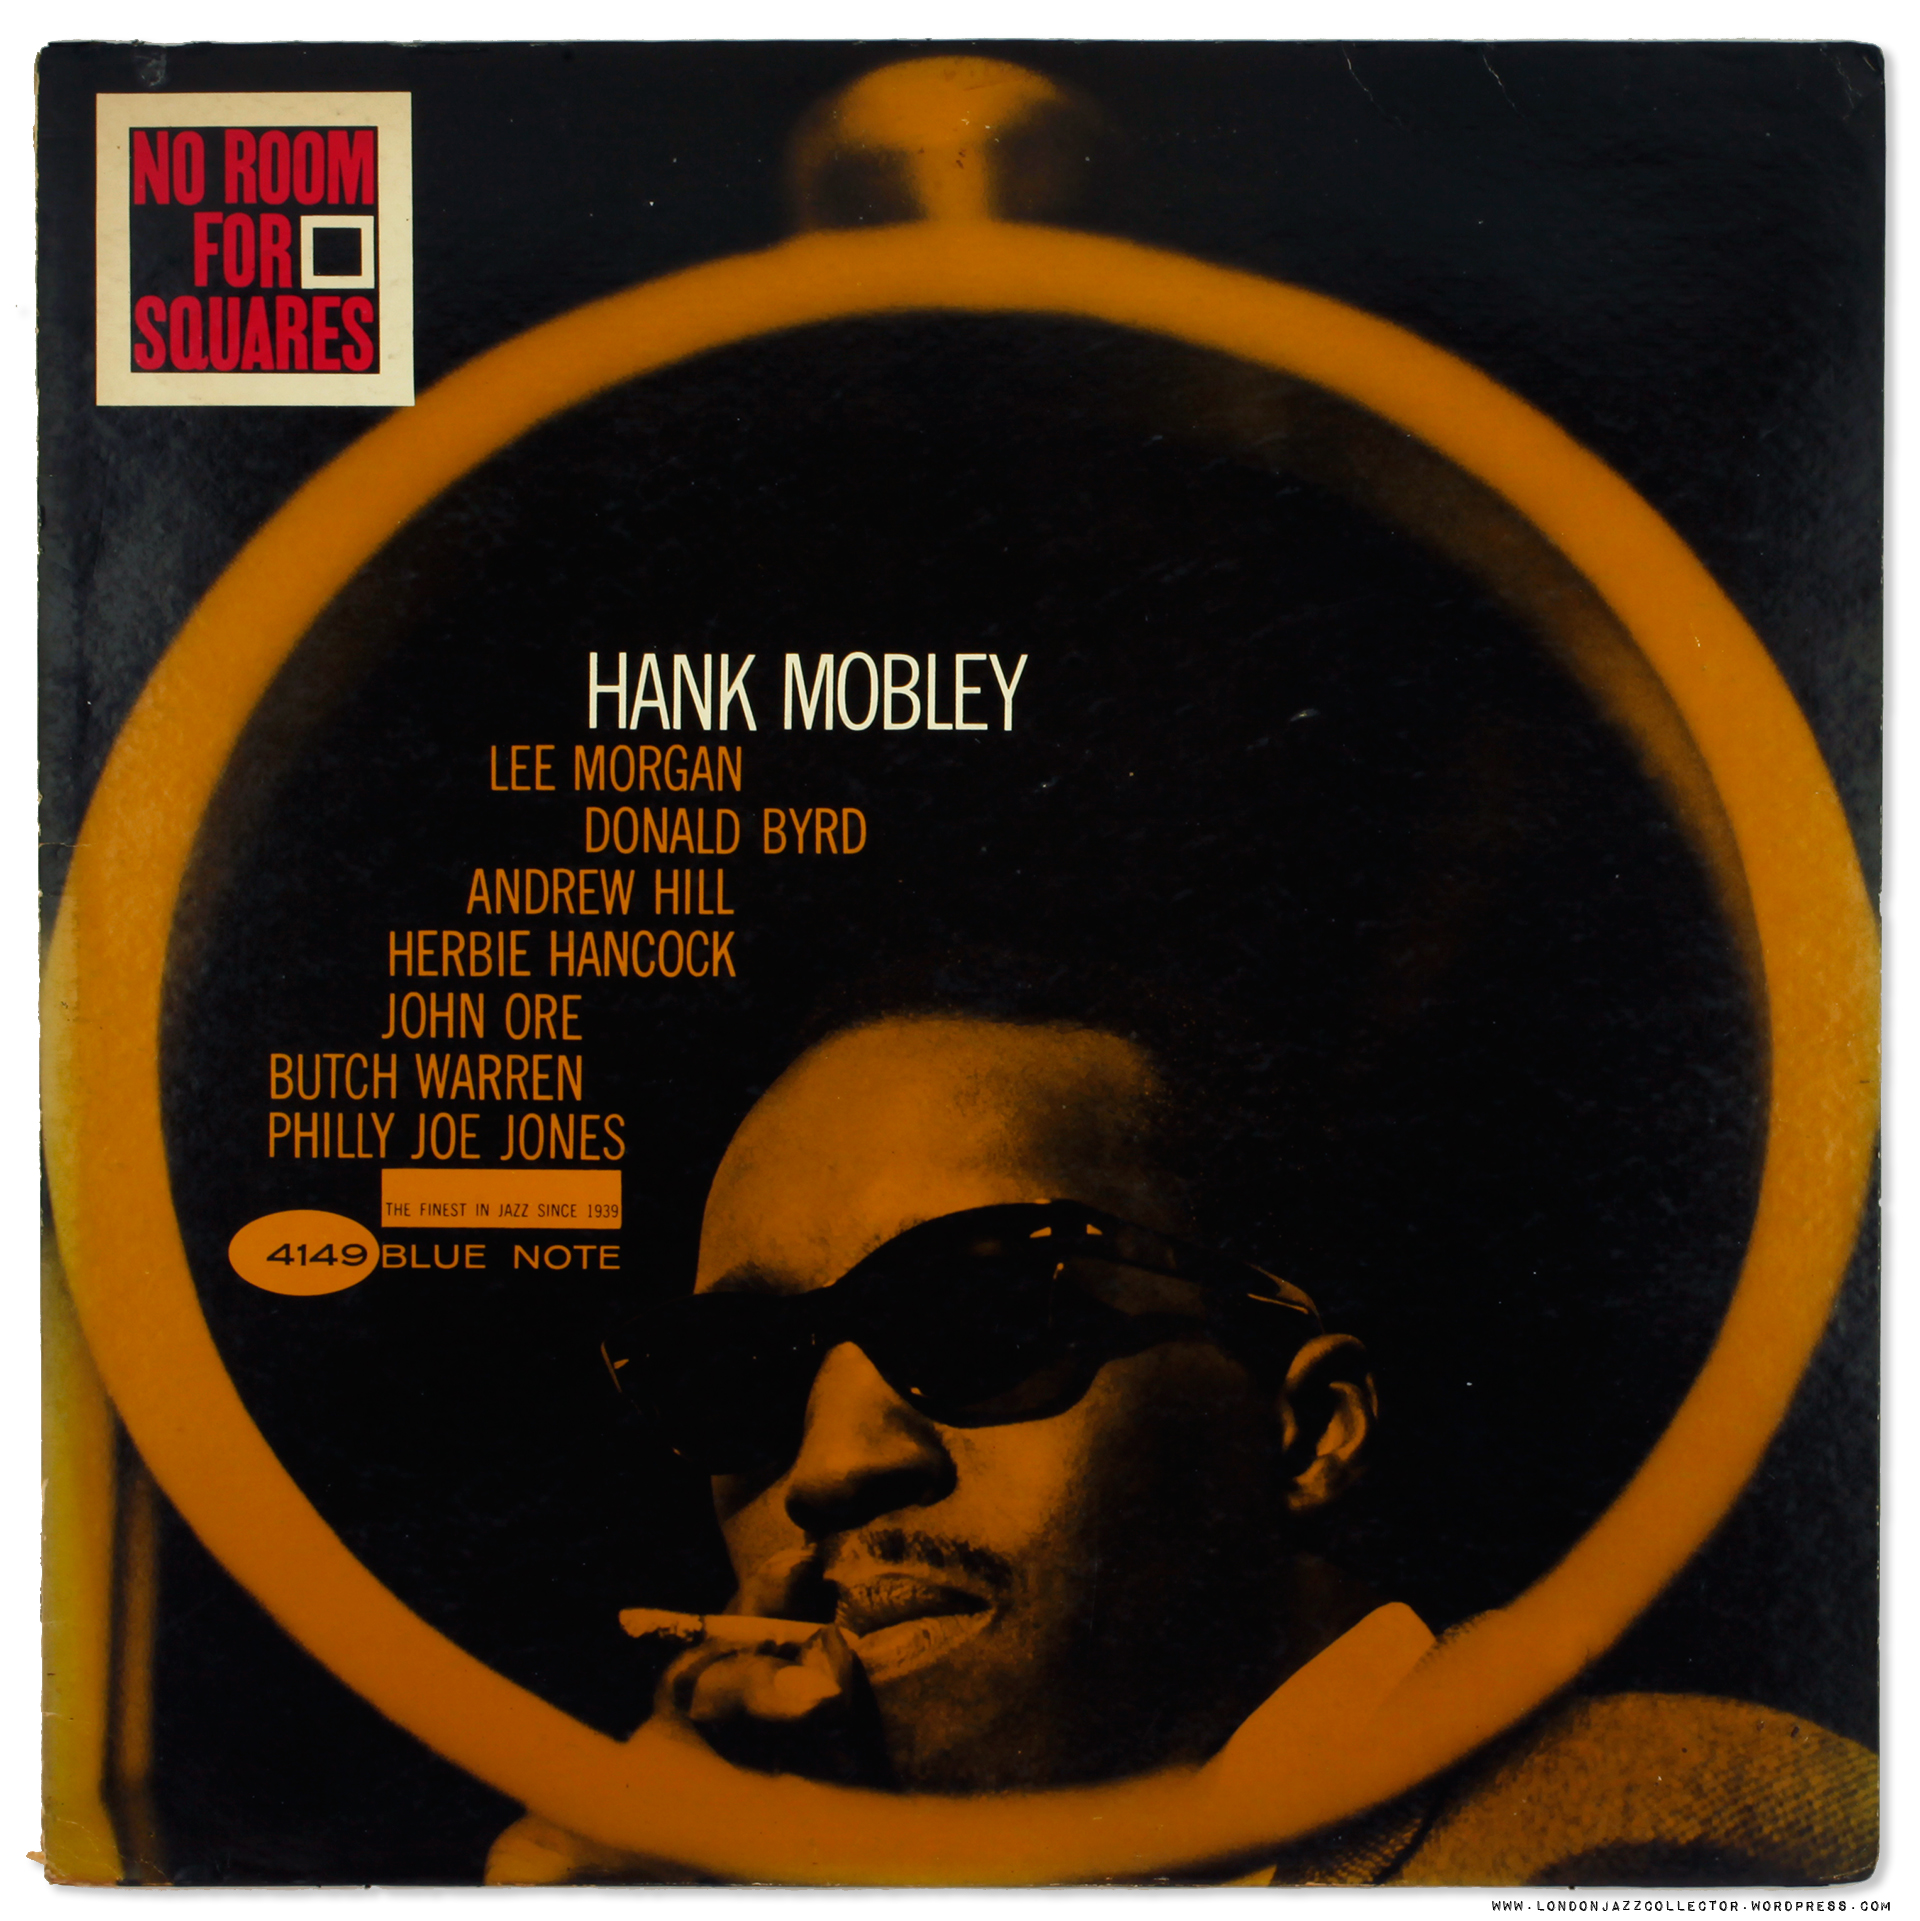 hank-mobley-bn-4149-no-room-for-squares-